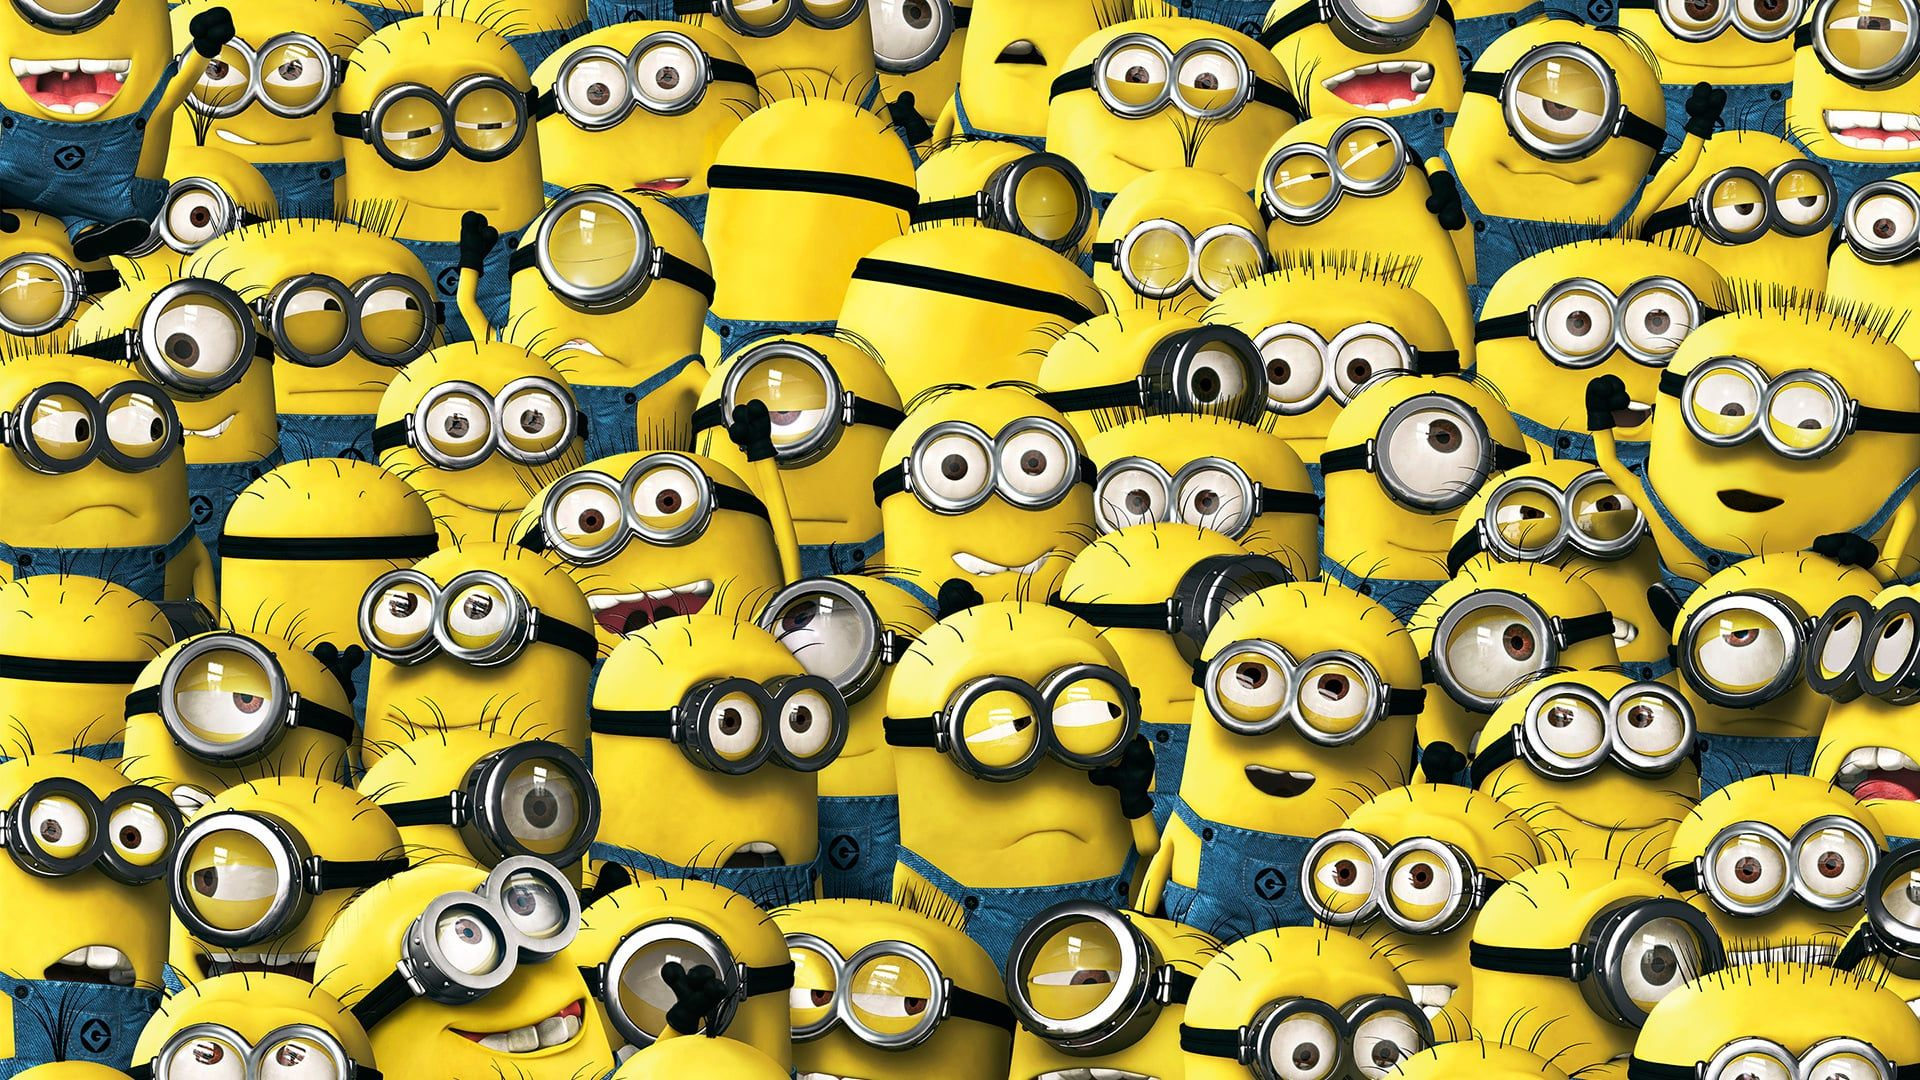 A Lot Of Minions In One Picture